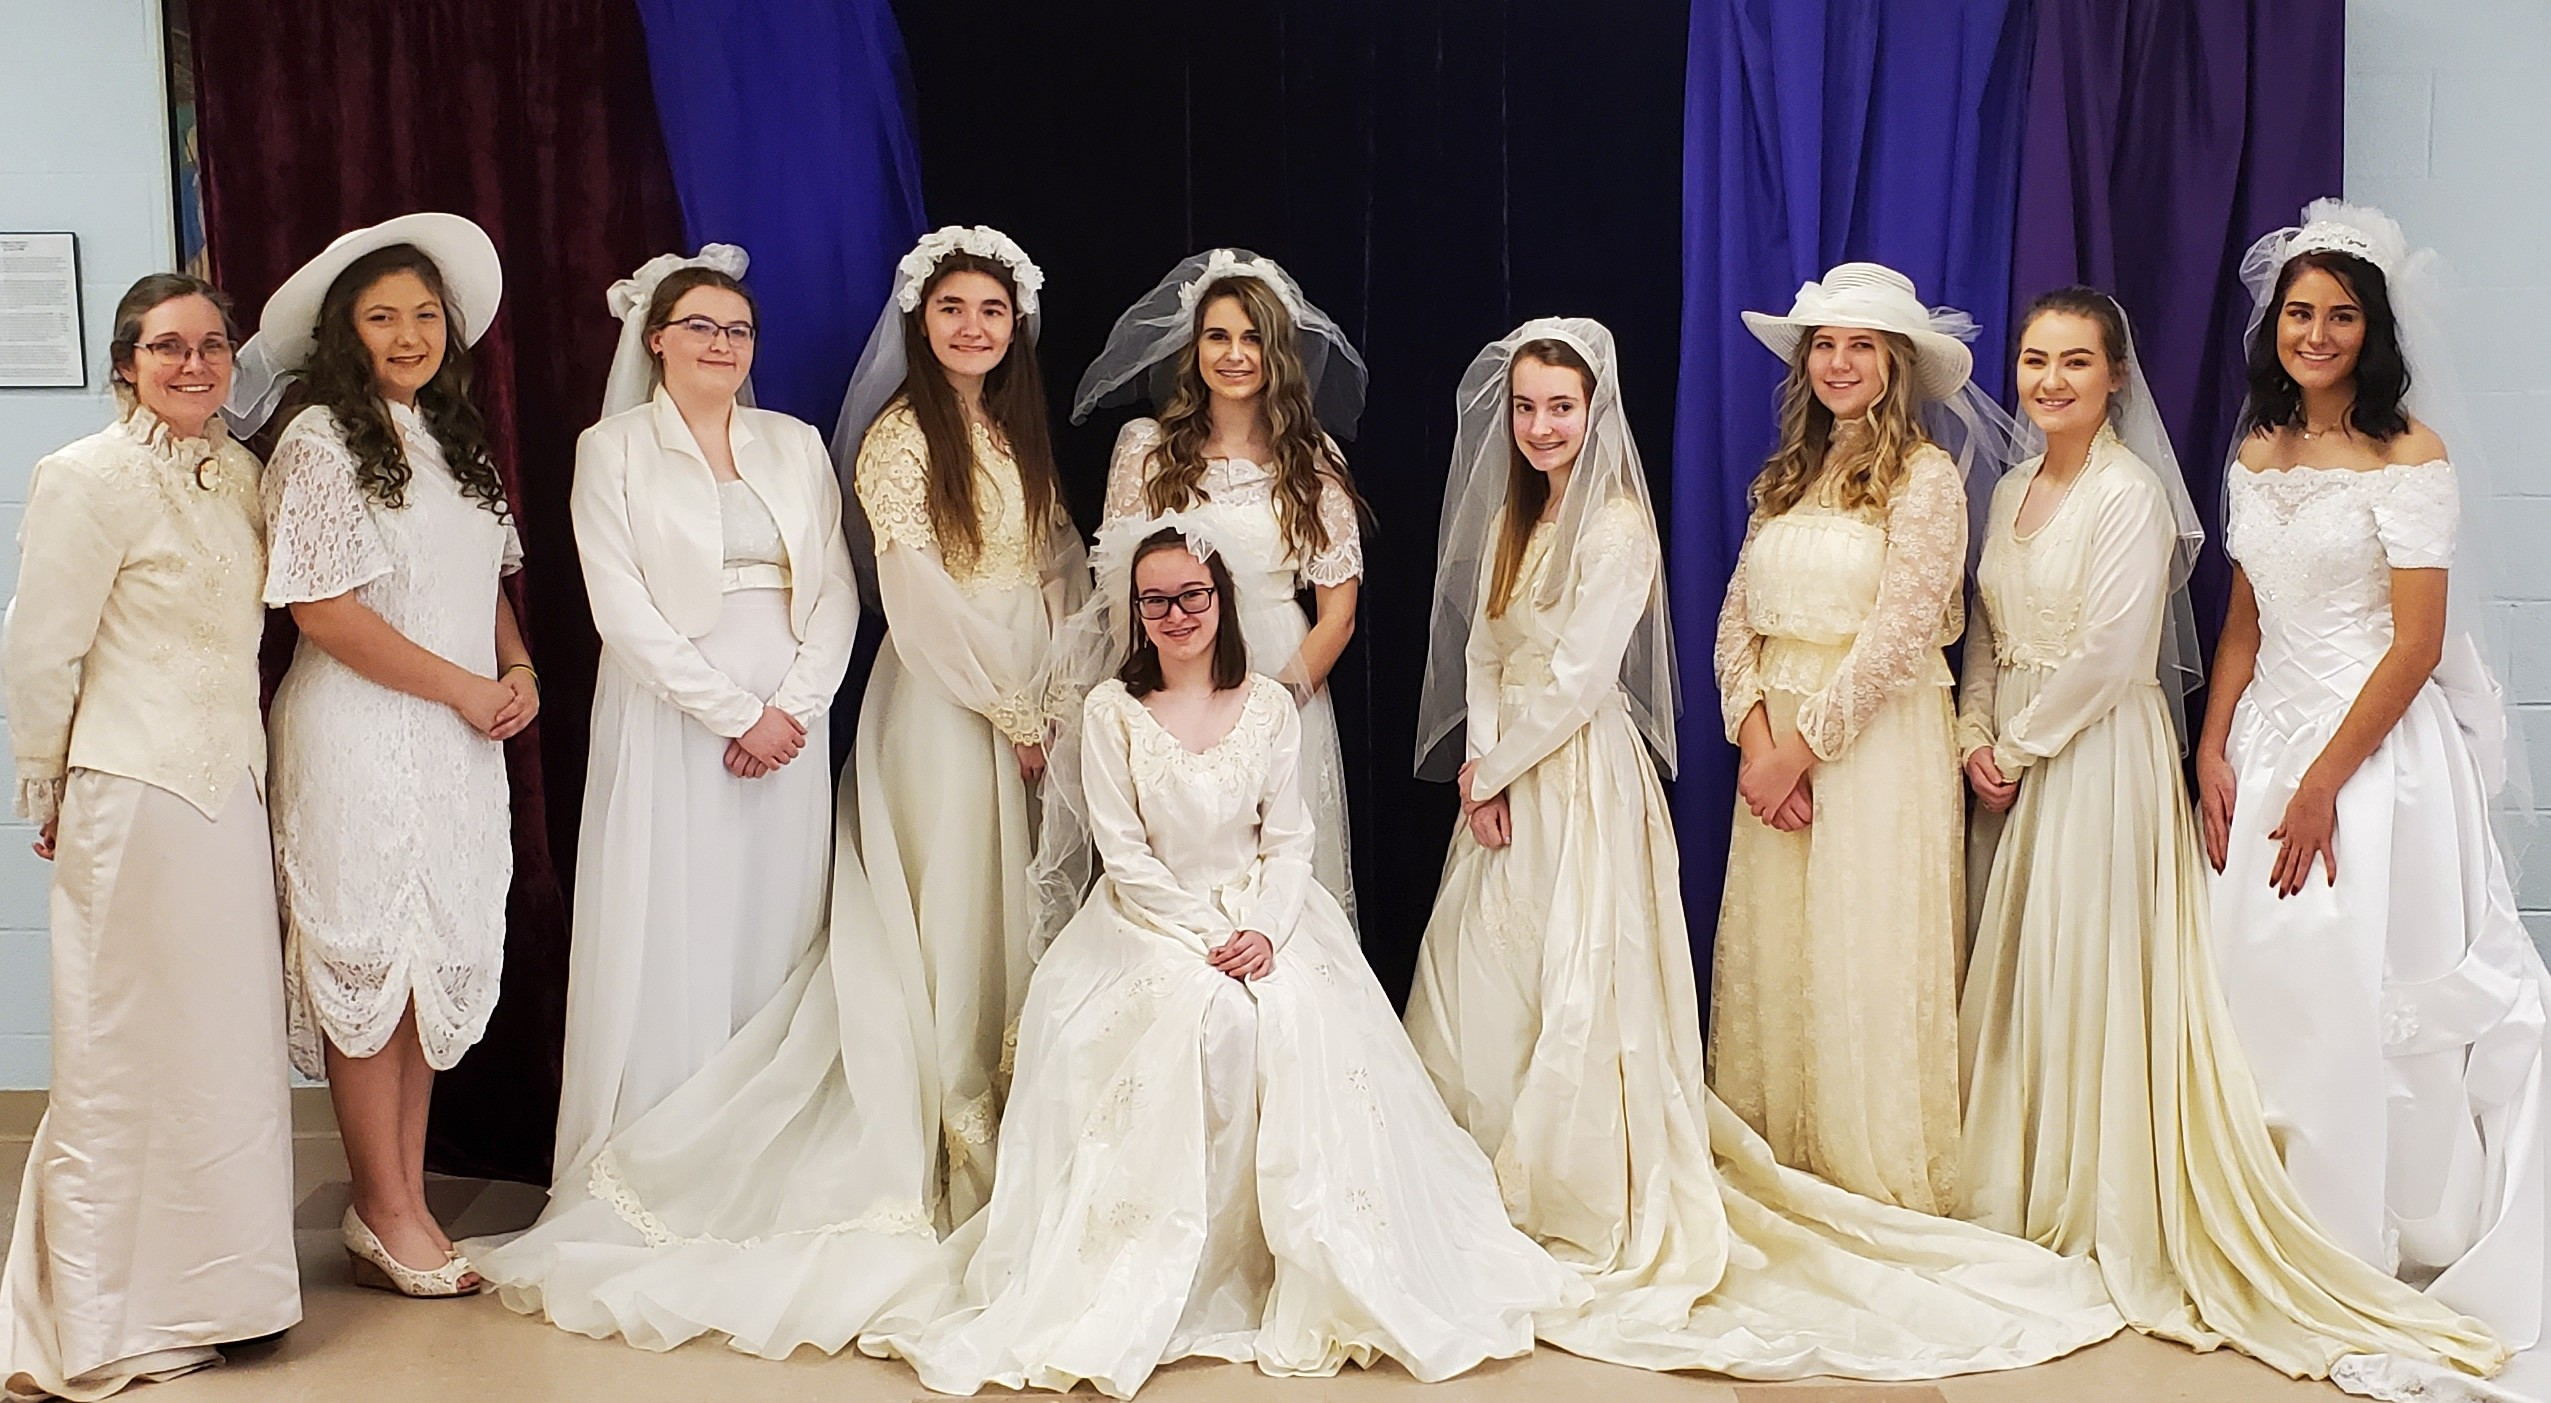 New this year at the Victorian Tea was the addition of a vintage bridal show. Madison Plains Key Club both modeled and performed tableside tea service to all guests